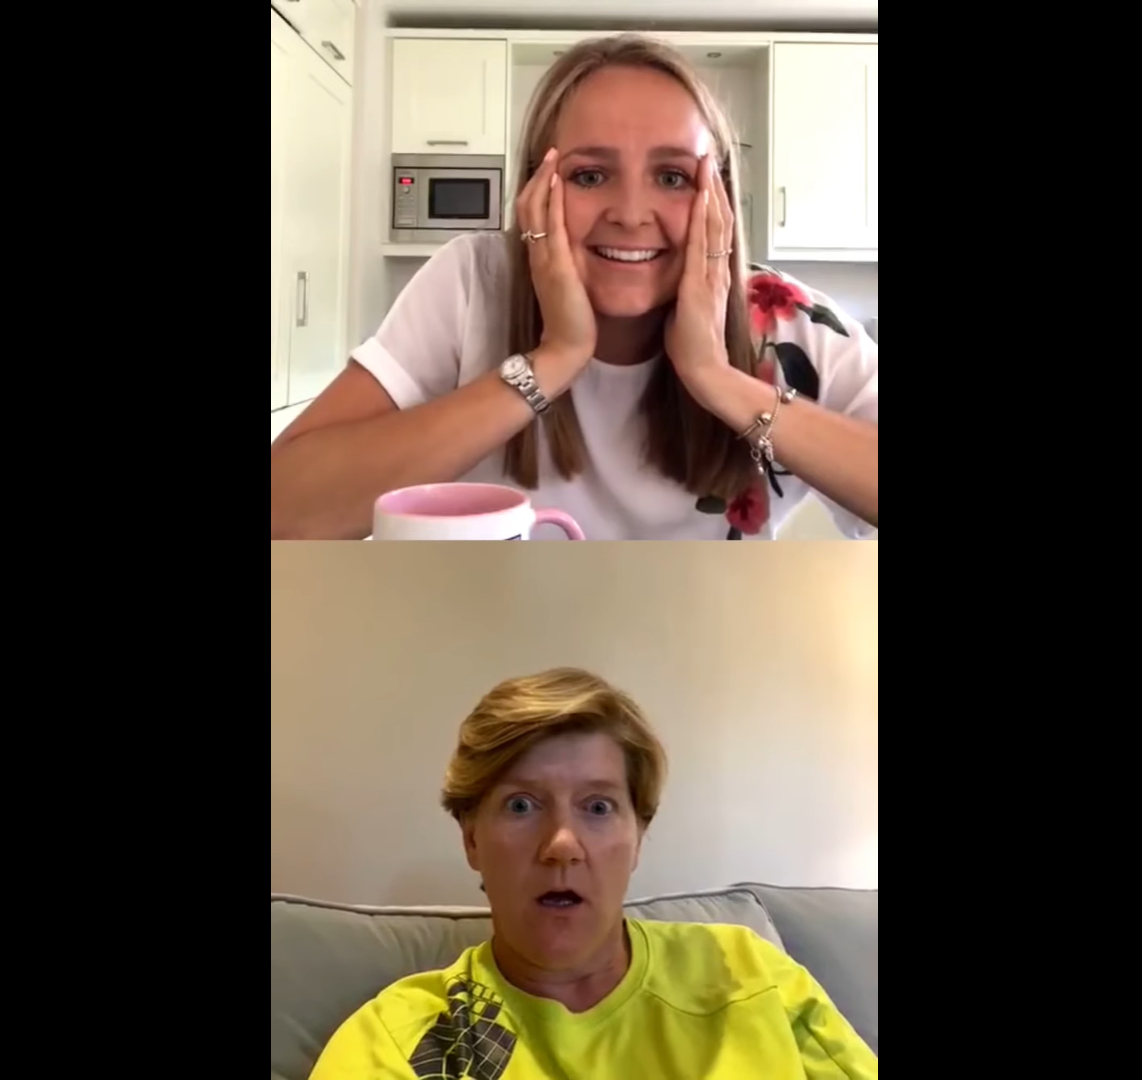 Its been a question on everyones mind since the infamous 2016 #SPOTY... How exactly did @clarebalding become an honorary member of our womens hockey team? 🤔 Find out by watching the latest episode of #CuppaNNatter with @EmilyDefroand 🍵 📹 bit.ly/3f8x7w7